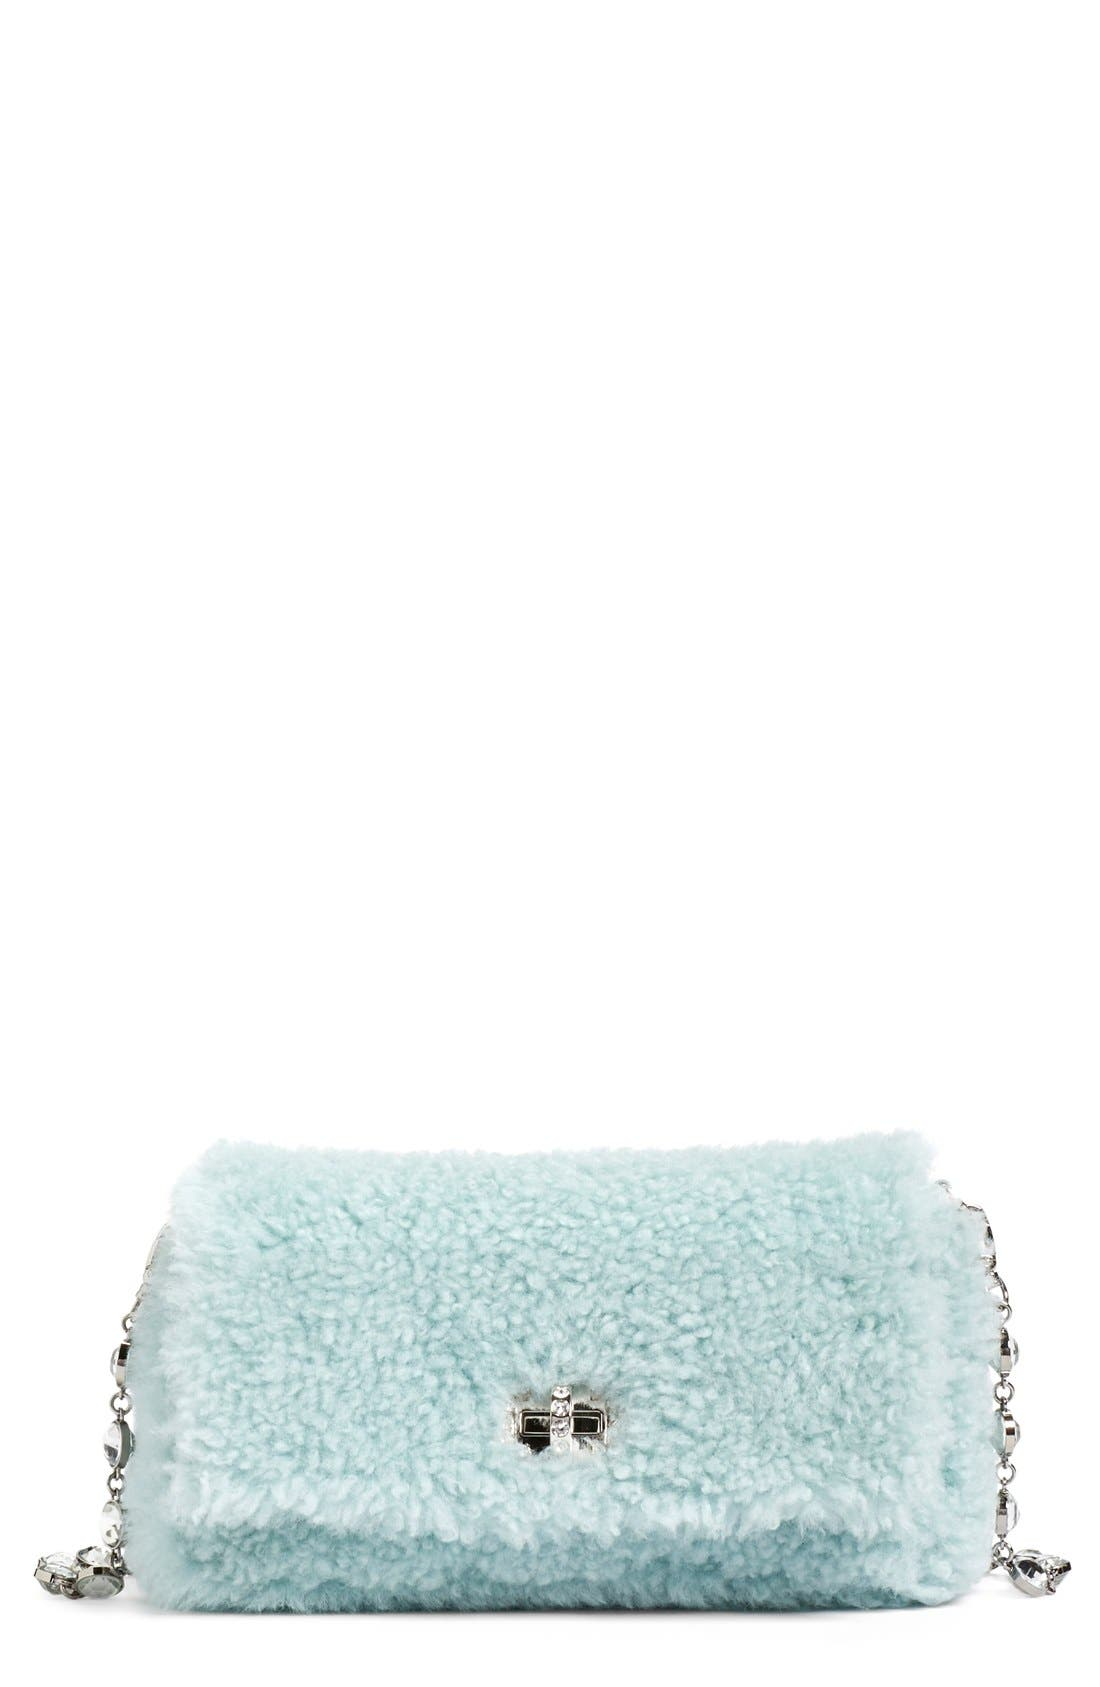 Main Image - Miu Miu Small Genuine Shearling Shoulder Bag